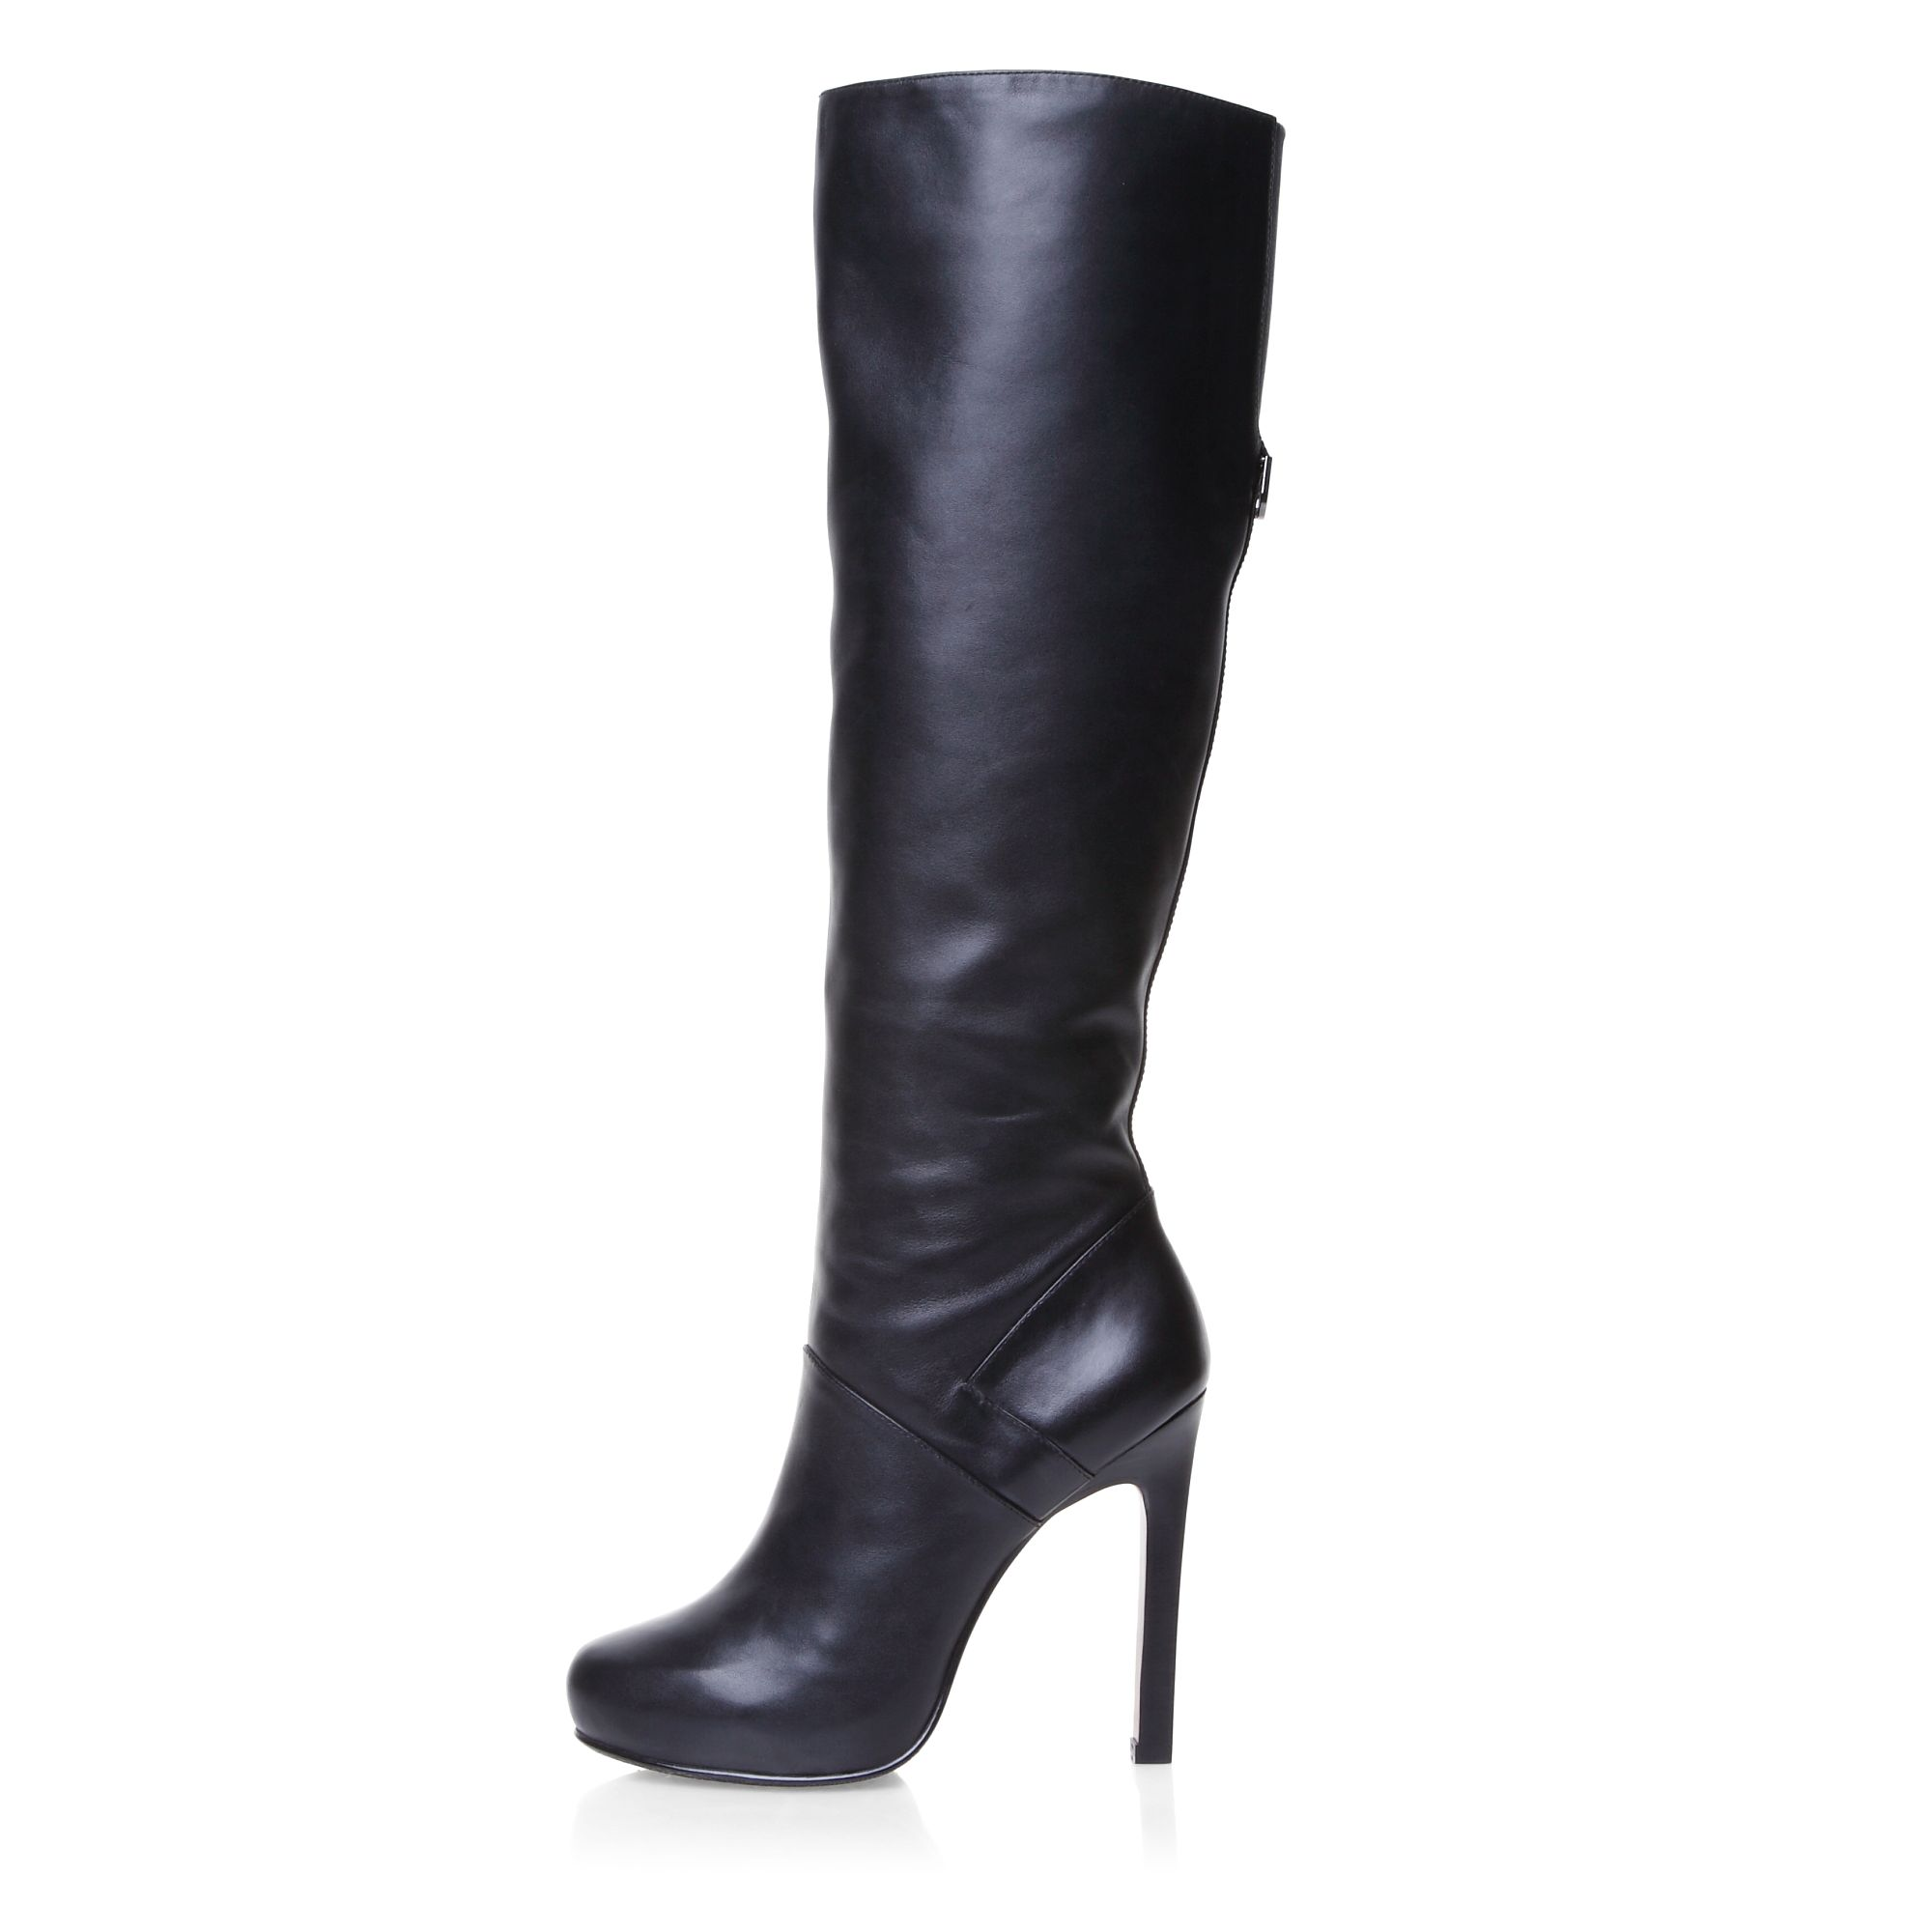 Mascotte Leather High Heeled High Leg Elegant Boots in Black